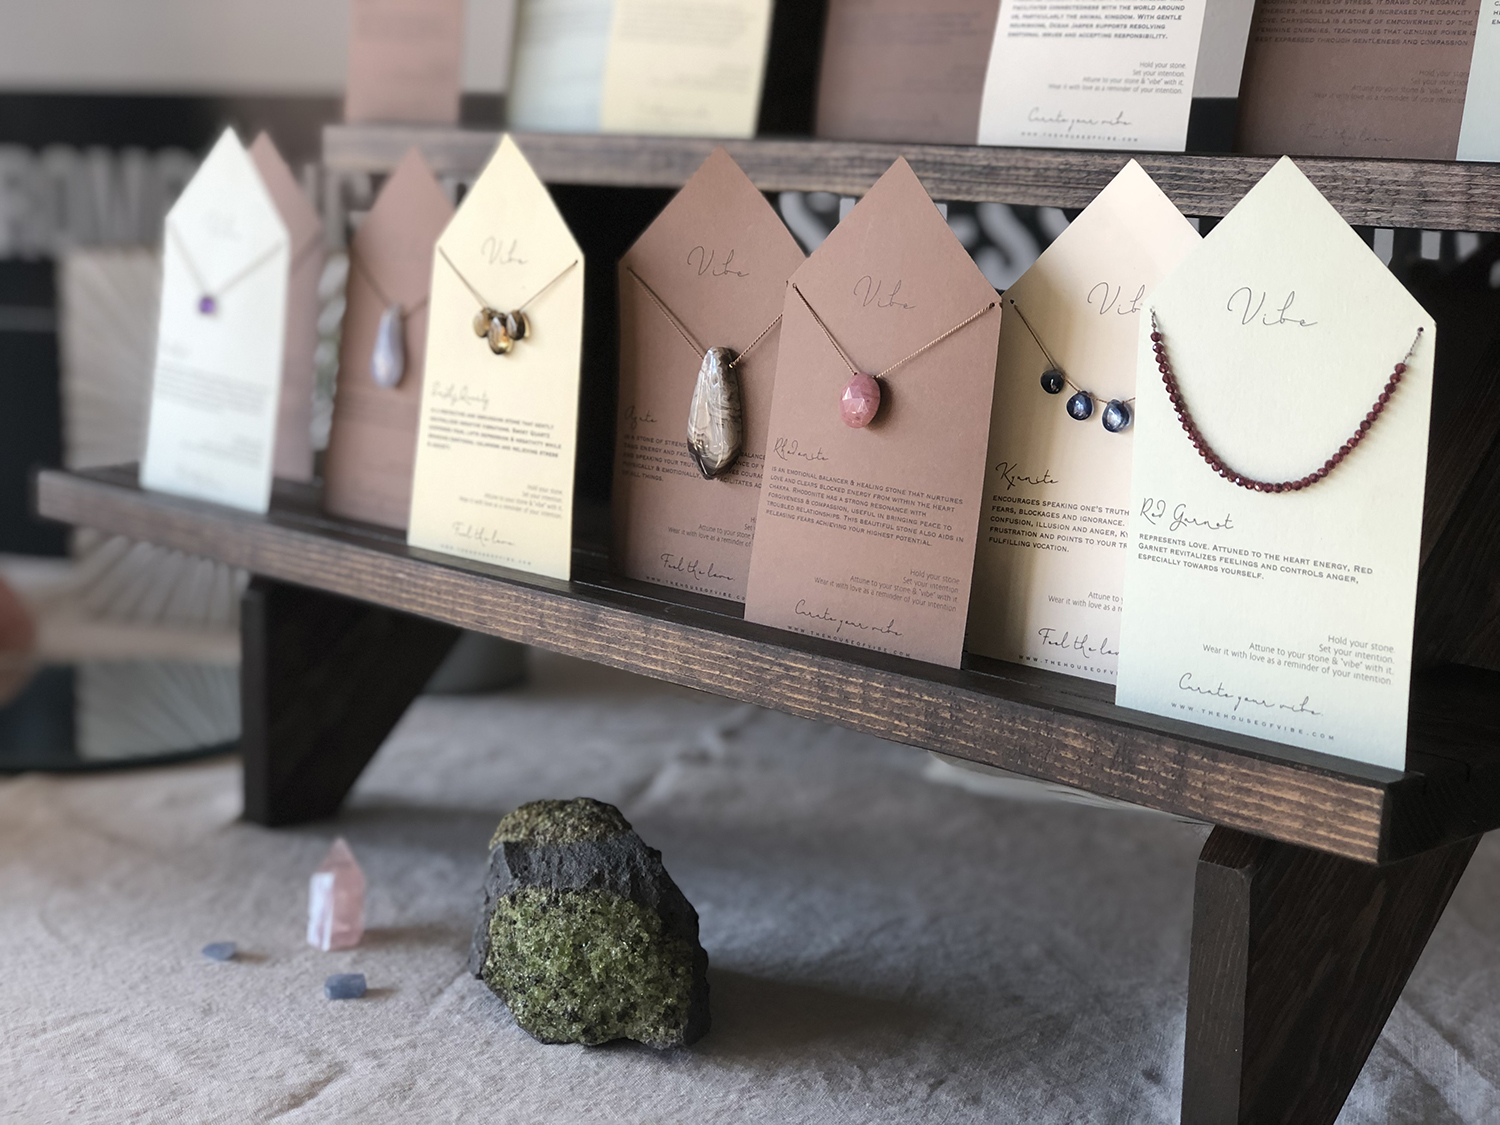 Vibe Jewelry at Hunt & Gather